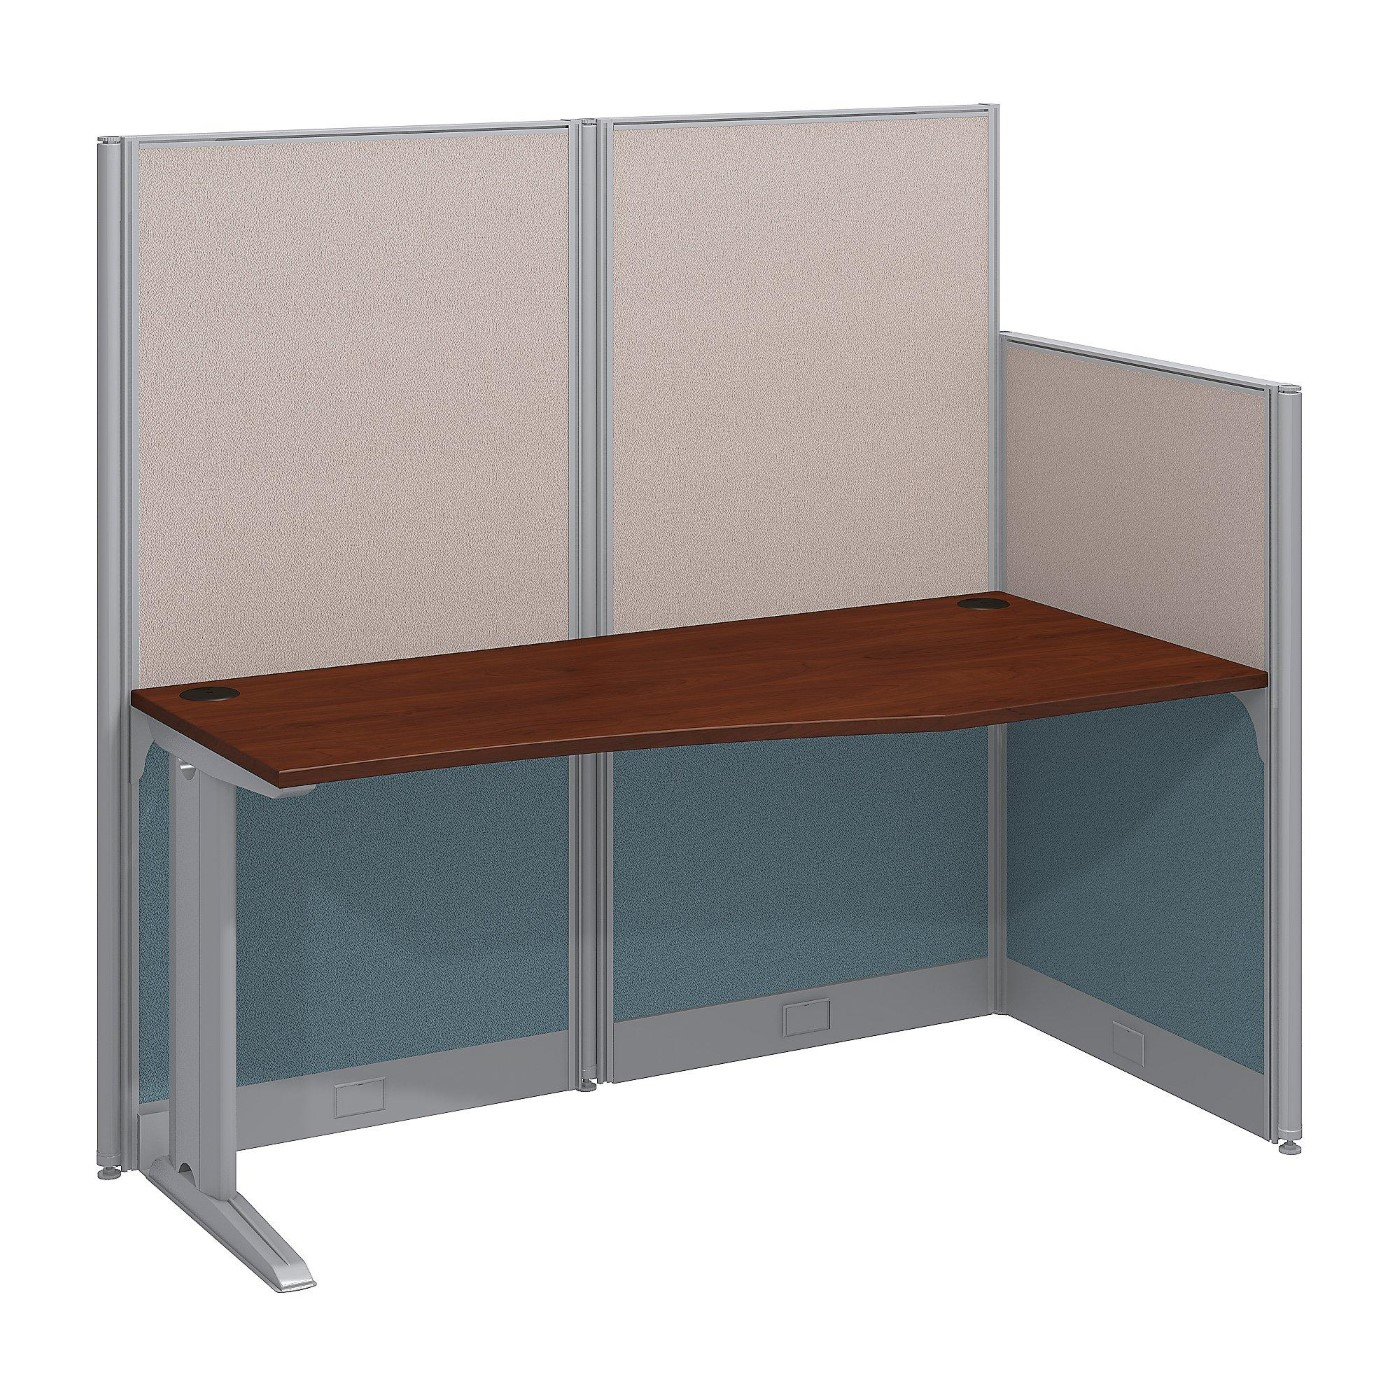 BUSH BUSINESS FURNITURE OFFICE IN AN HOUR 65W X 33D CUBICLE WORKSTATION. FREE SHIPPING.